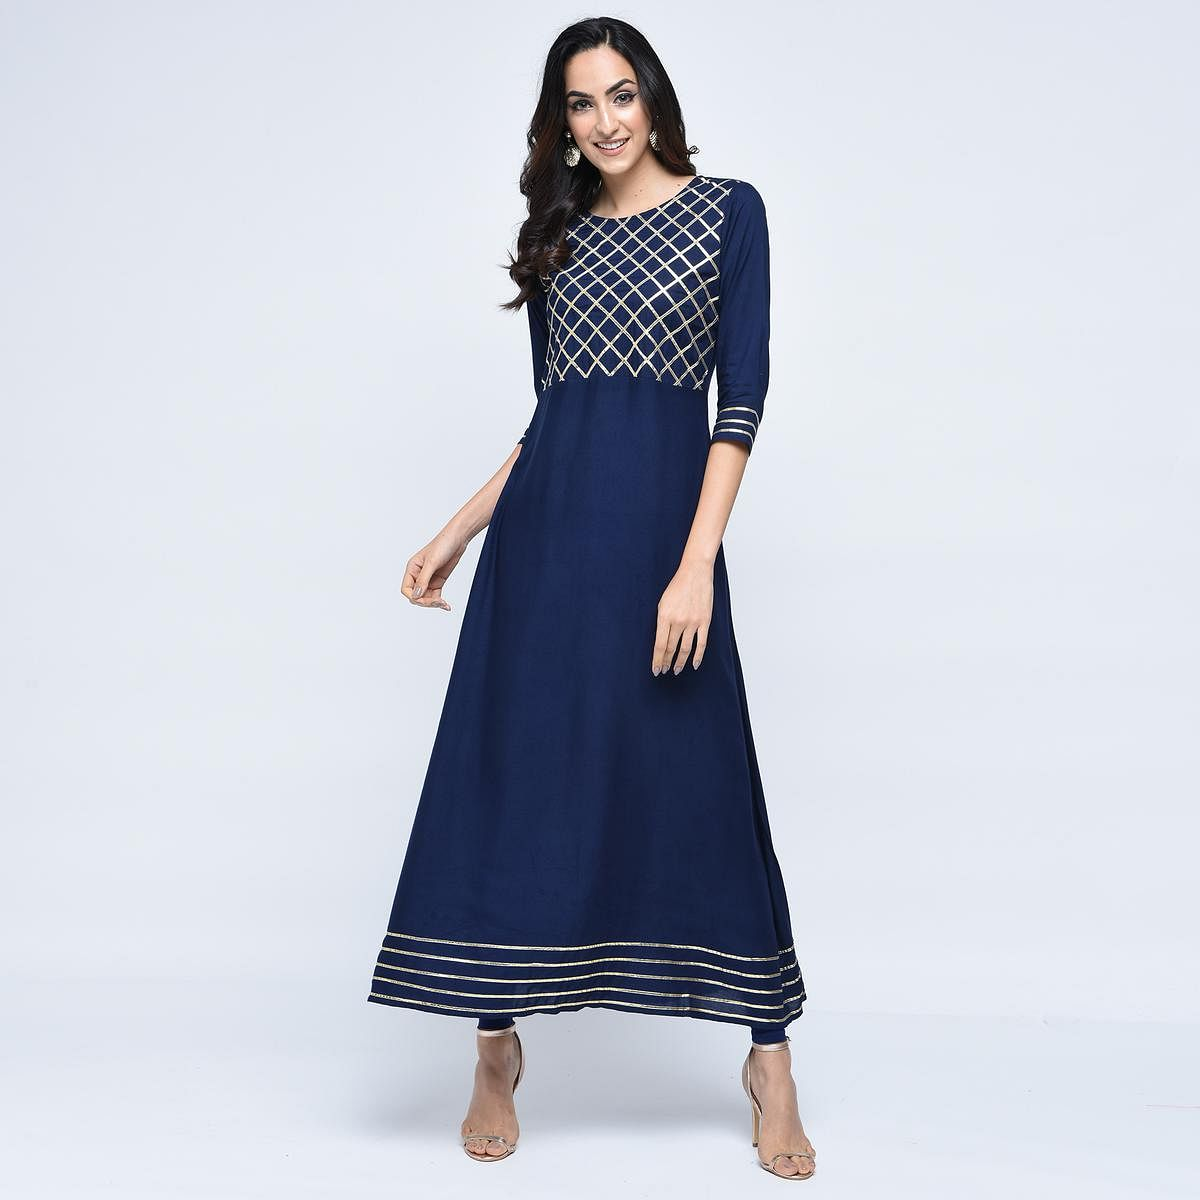 Eye-catching Navy Blue Colored Partywear Rayon Kurti